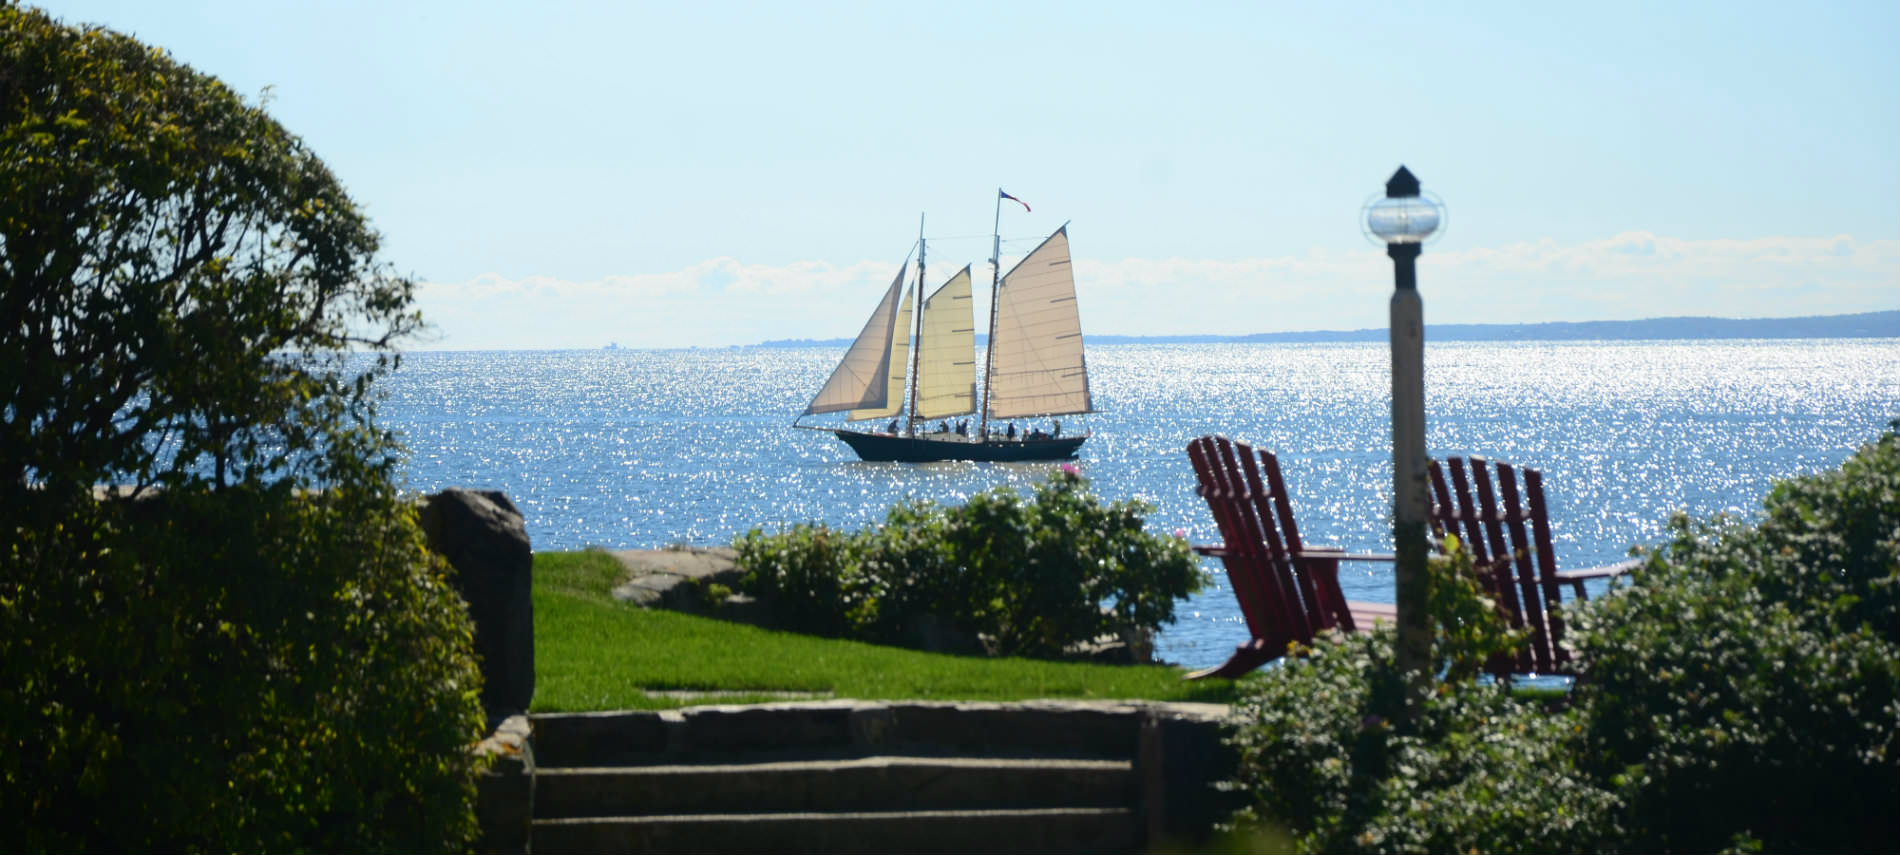 Boat with three white sails floats past a lovely garden with two adirondack chairs overlooking the sea.